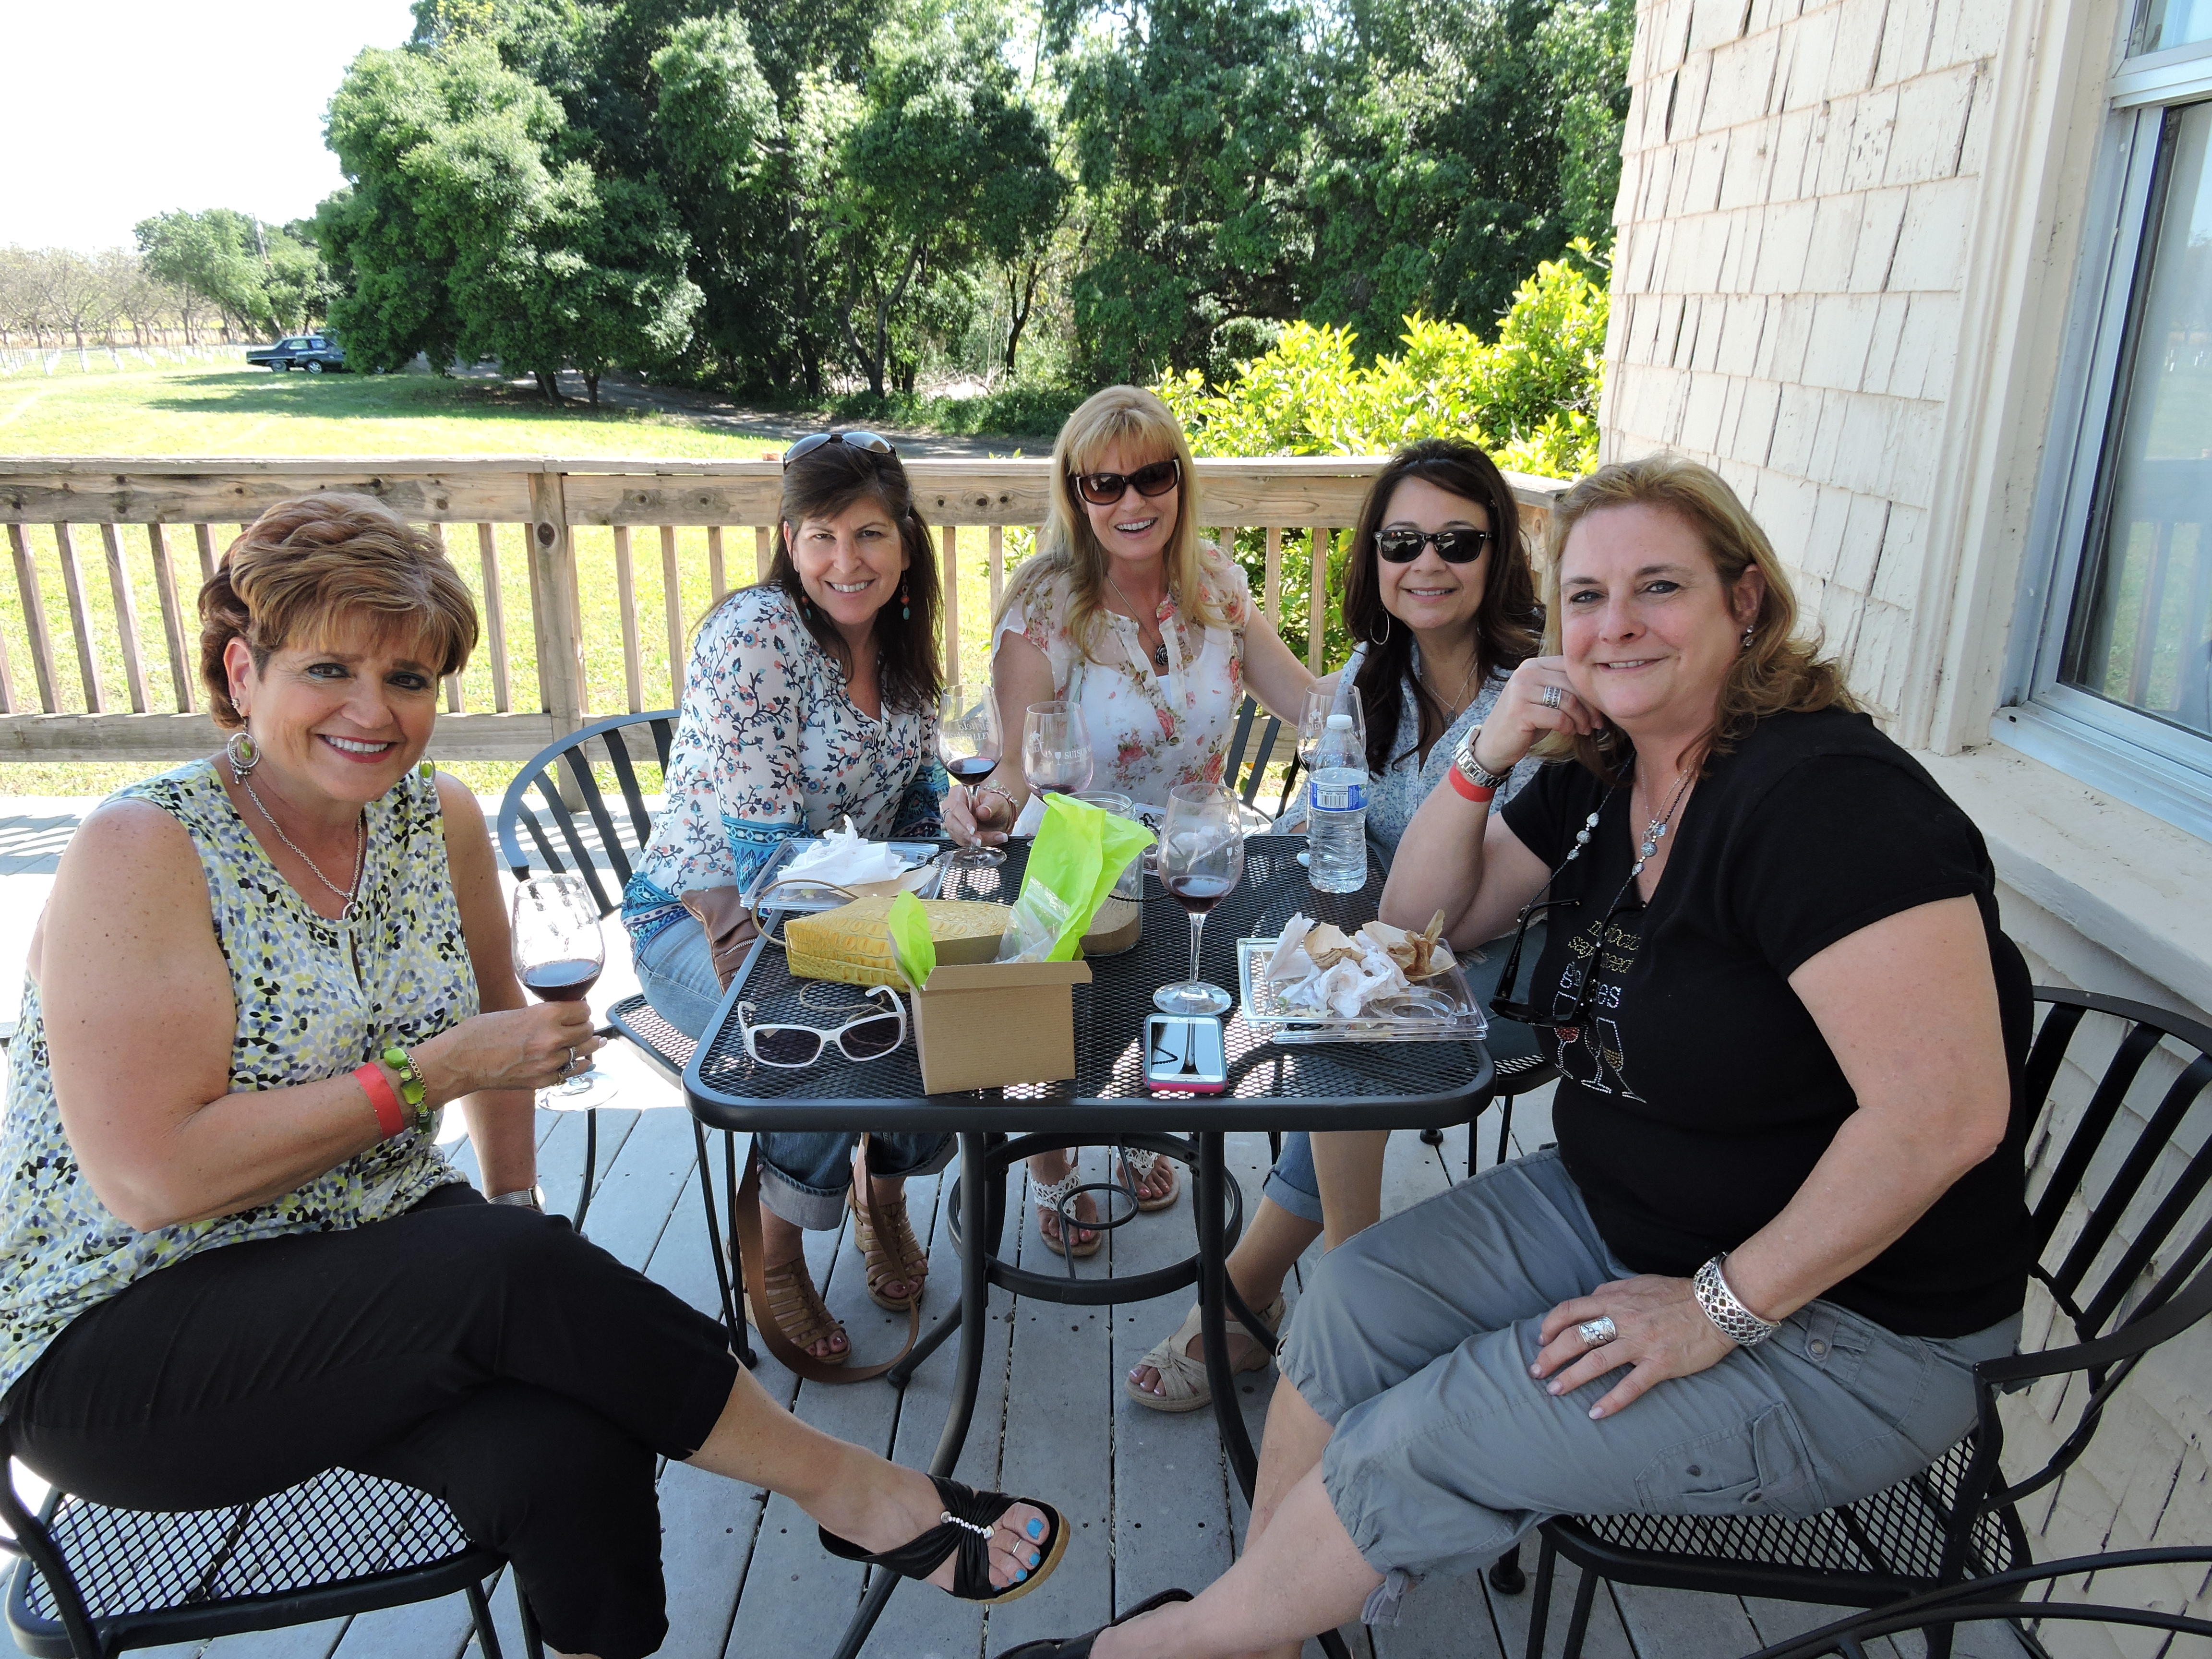 A group of friends enjoy great company and delicious wine at BackRoad Vines.